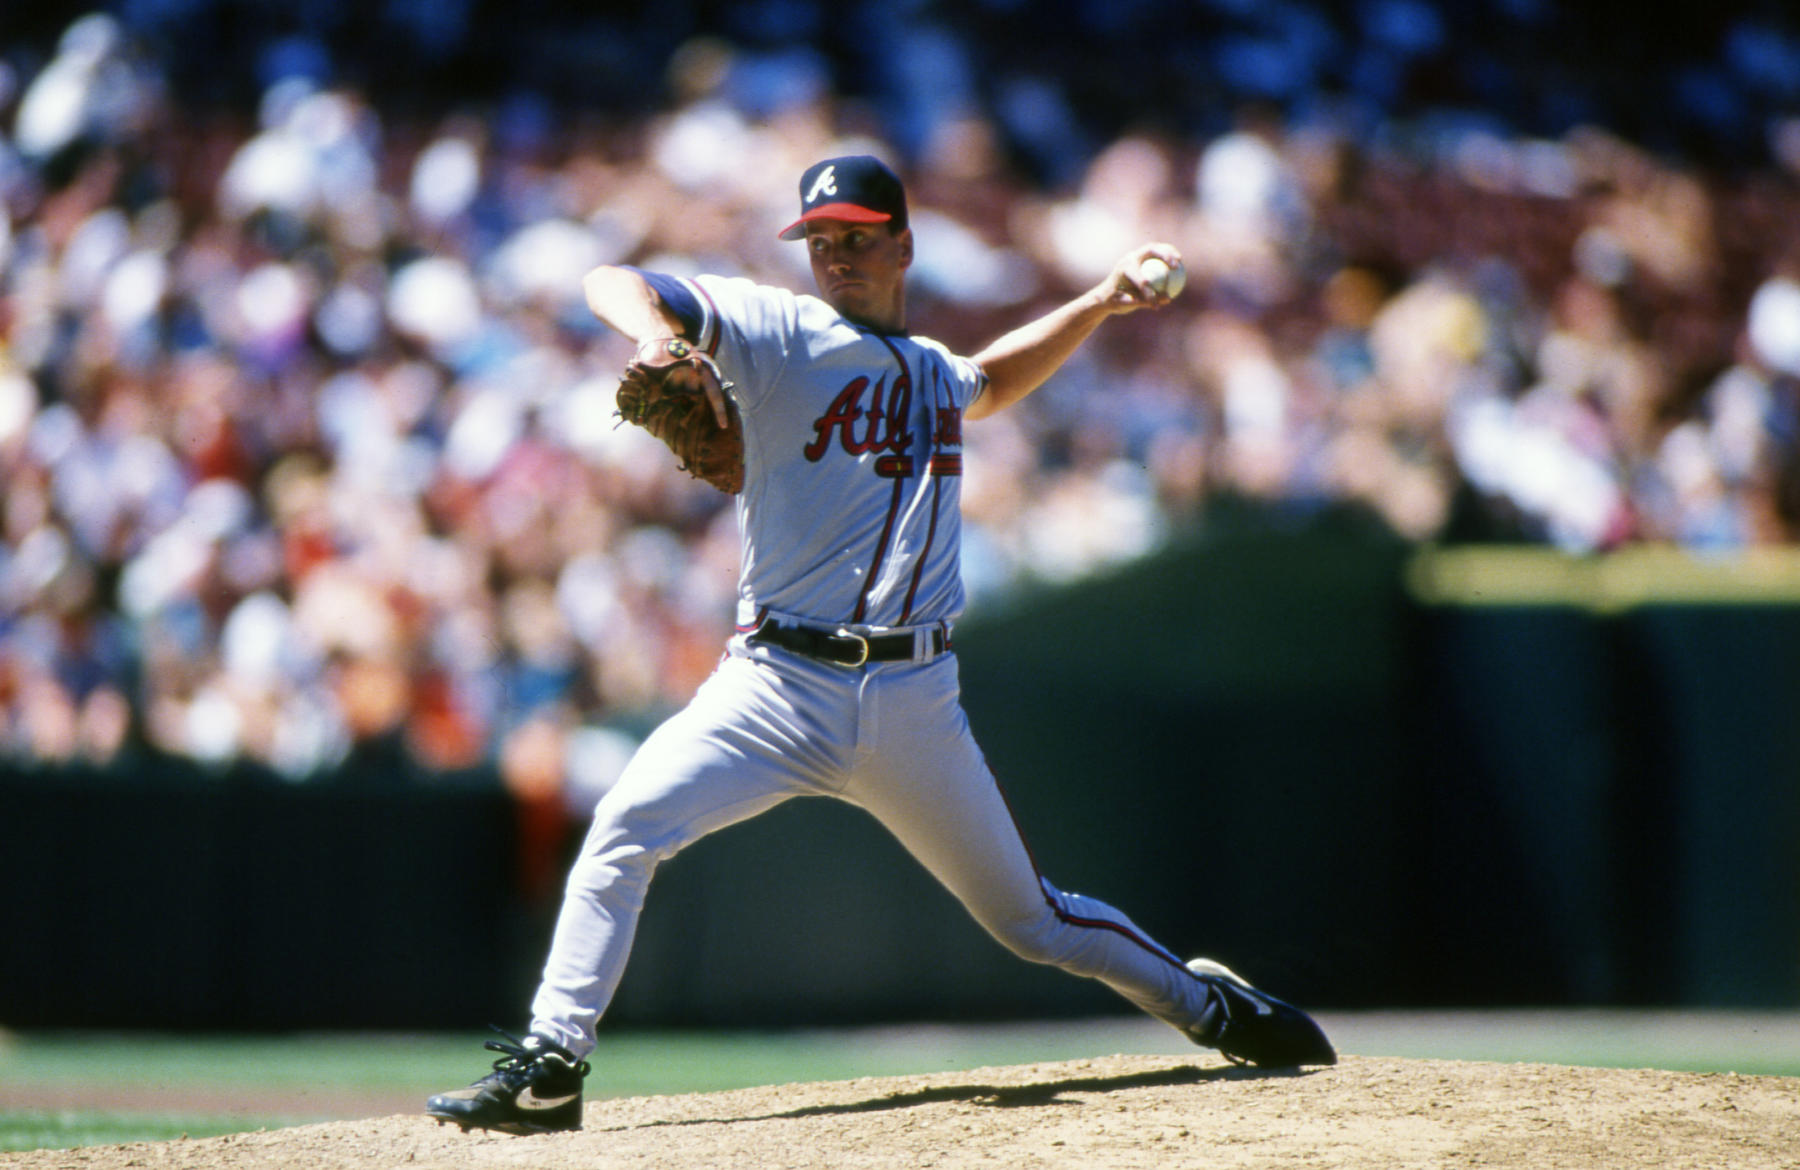 Glavine moves to the plate to deliver one of his deadly change-ups. BL-12-2013-601 (Brad Mangin / National Baseball Hall of Fame Library)